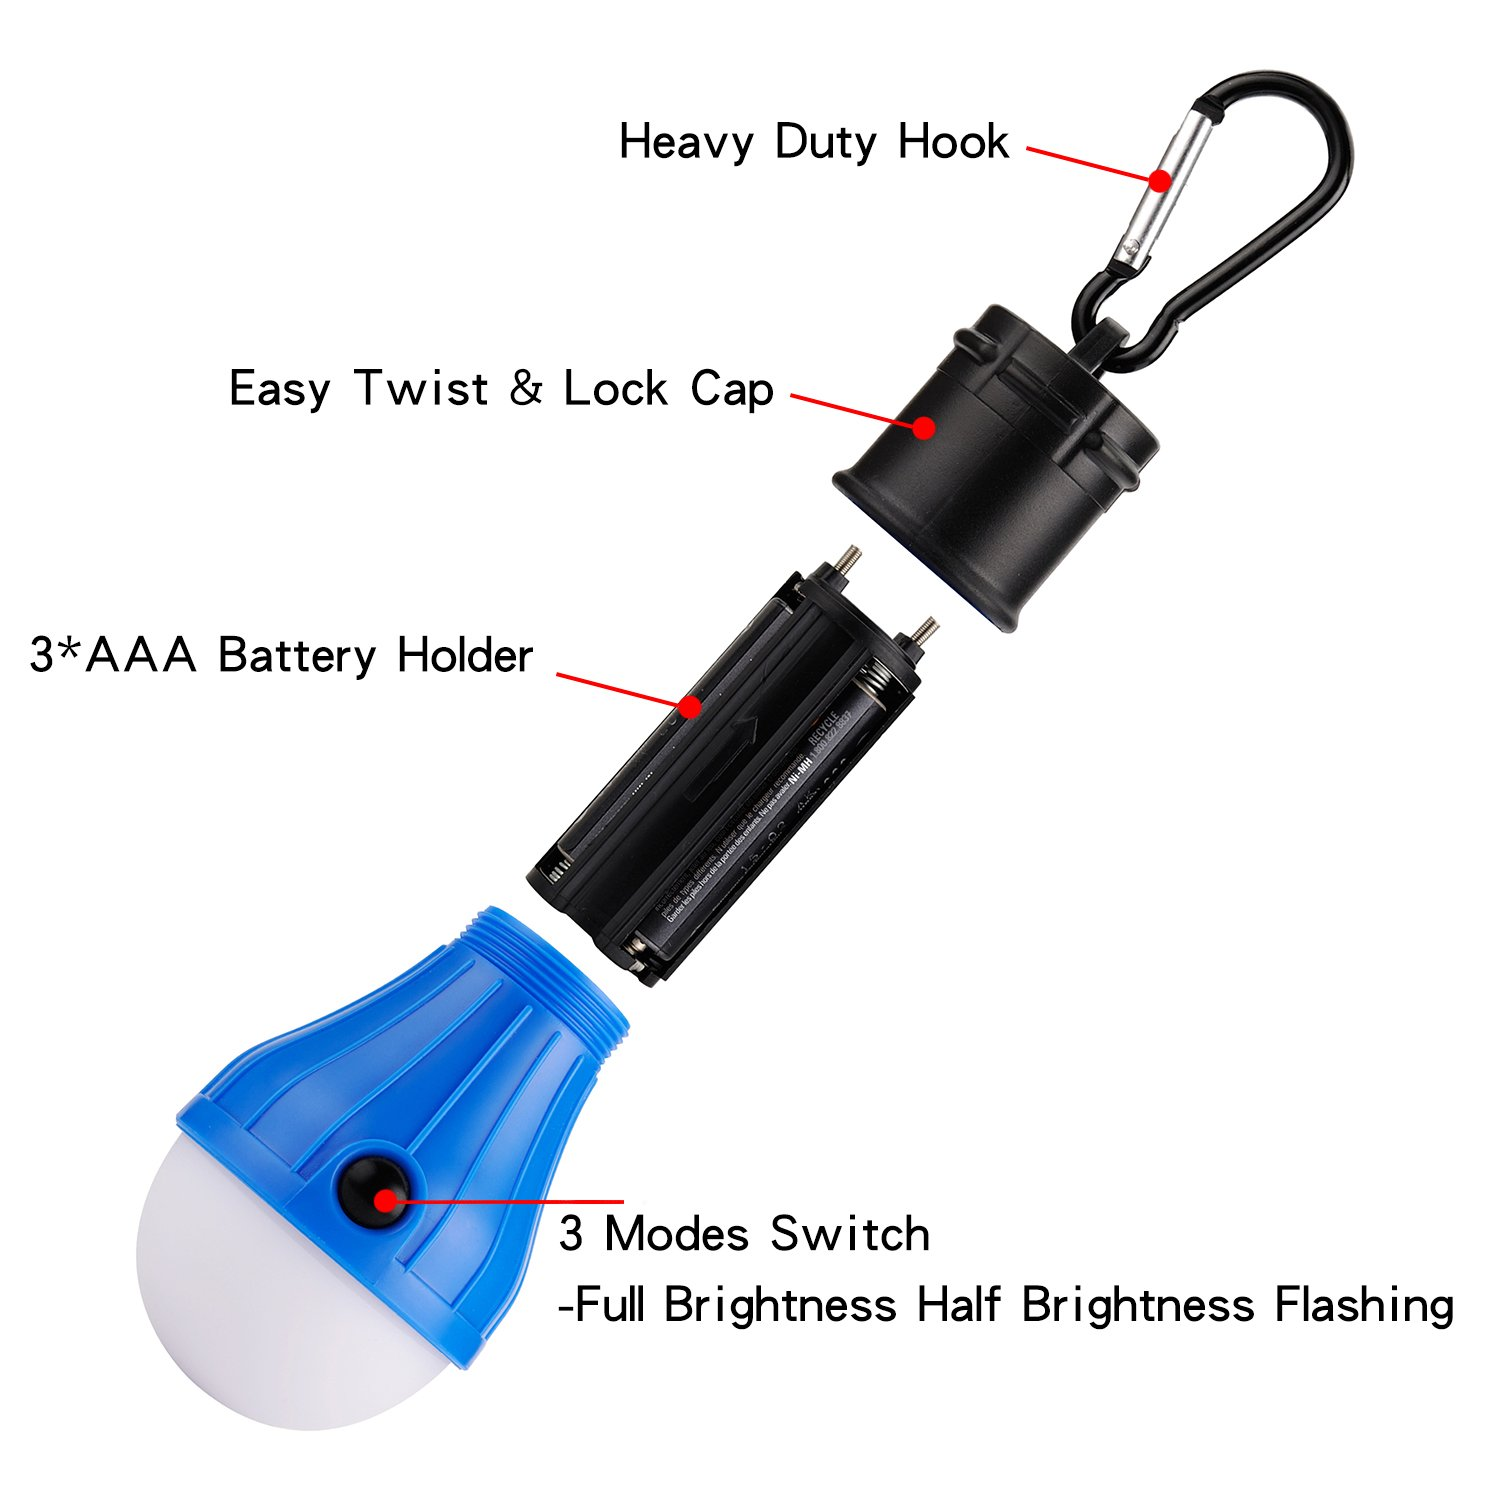 Portable LED Lantern Tent Light Bulb for Camping Hiking Fishing Waterproof Emergency Light Battery Powered Camping Lamp Battery Powered Camping Equipment Gear Gadgets Lamp for Outdoor /& Indoor JICHIA